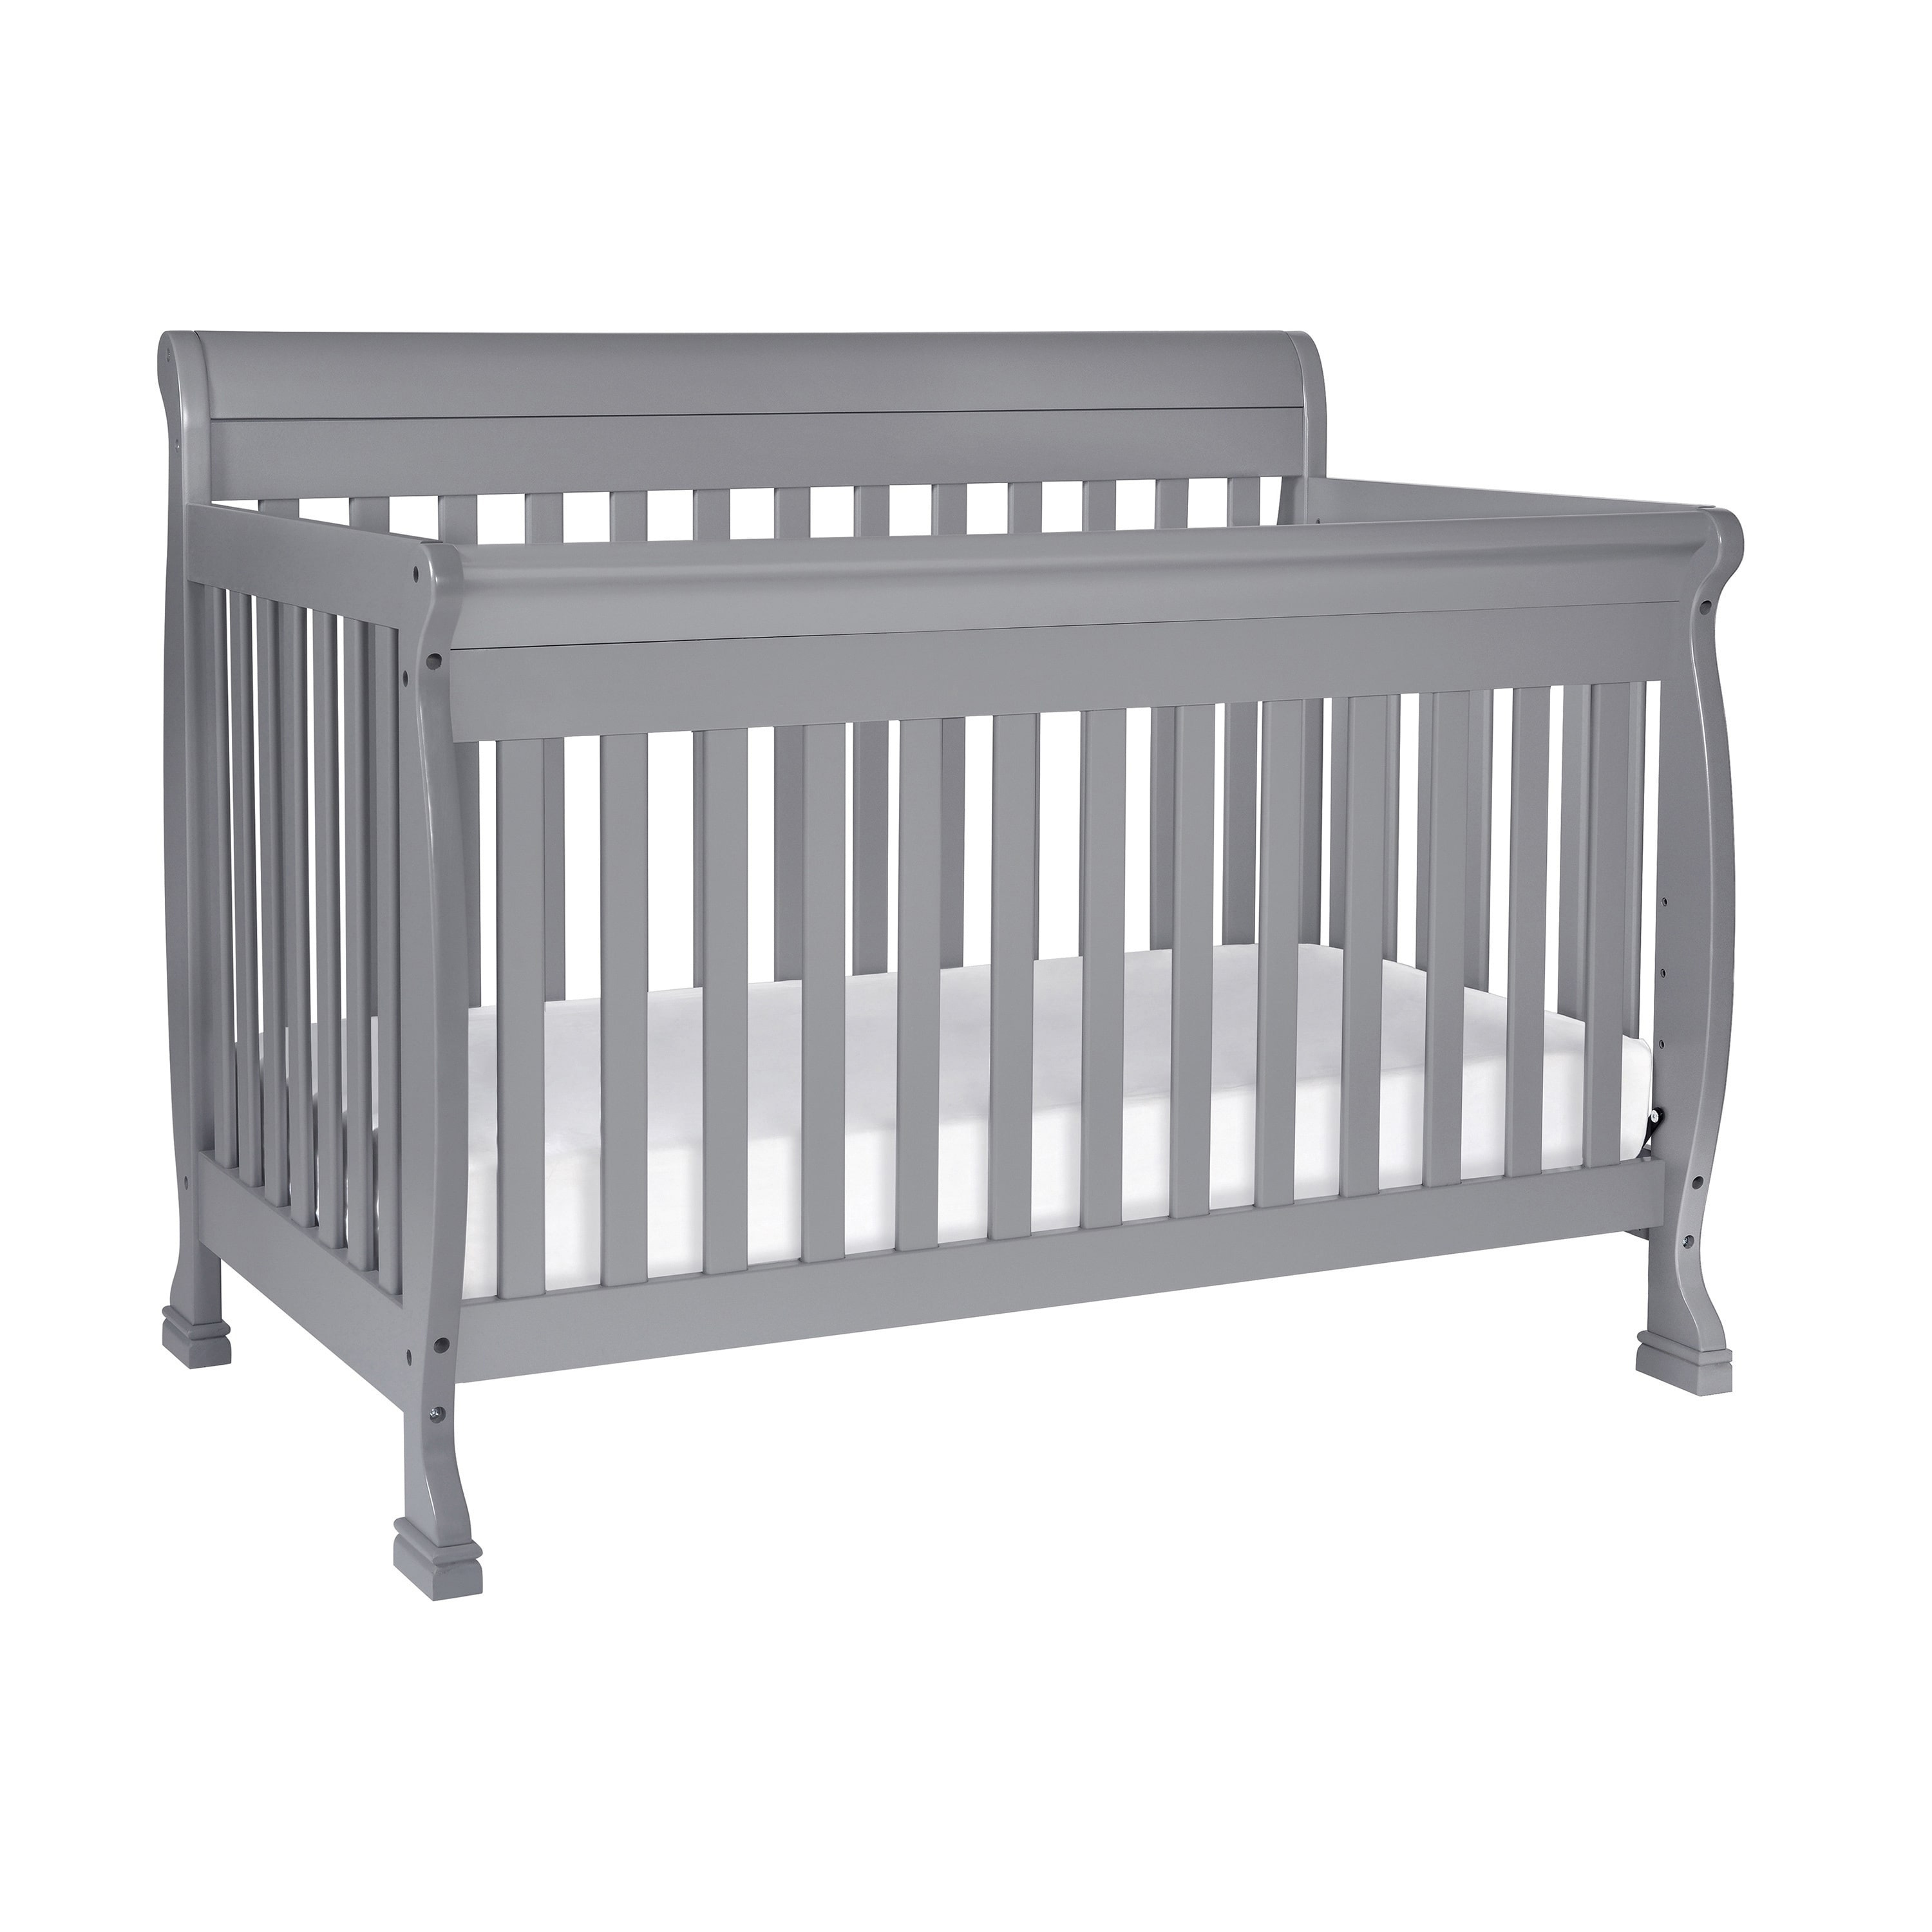 Grey Wood Baby Cribs Online At Our Best Kids Toddler Furniture Deals